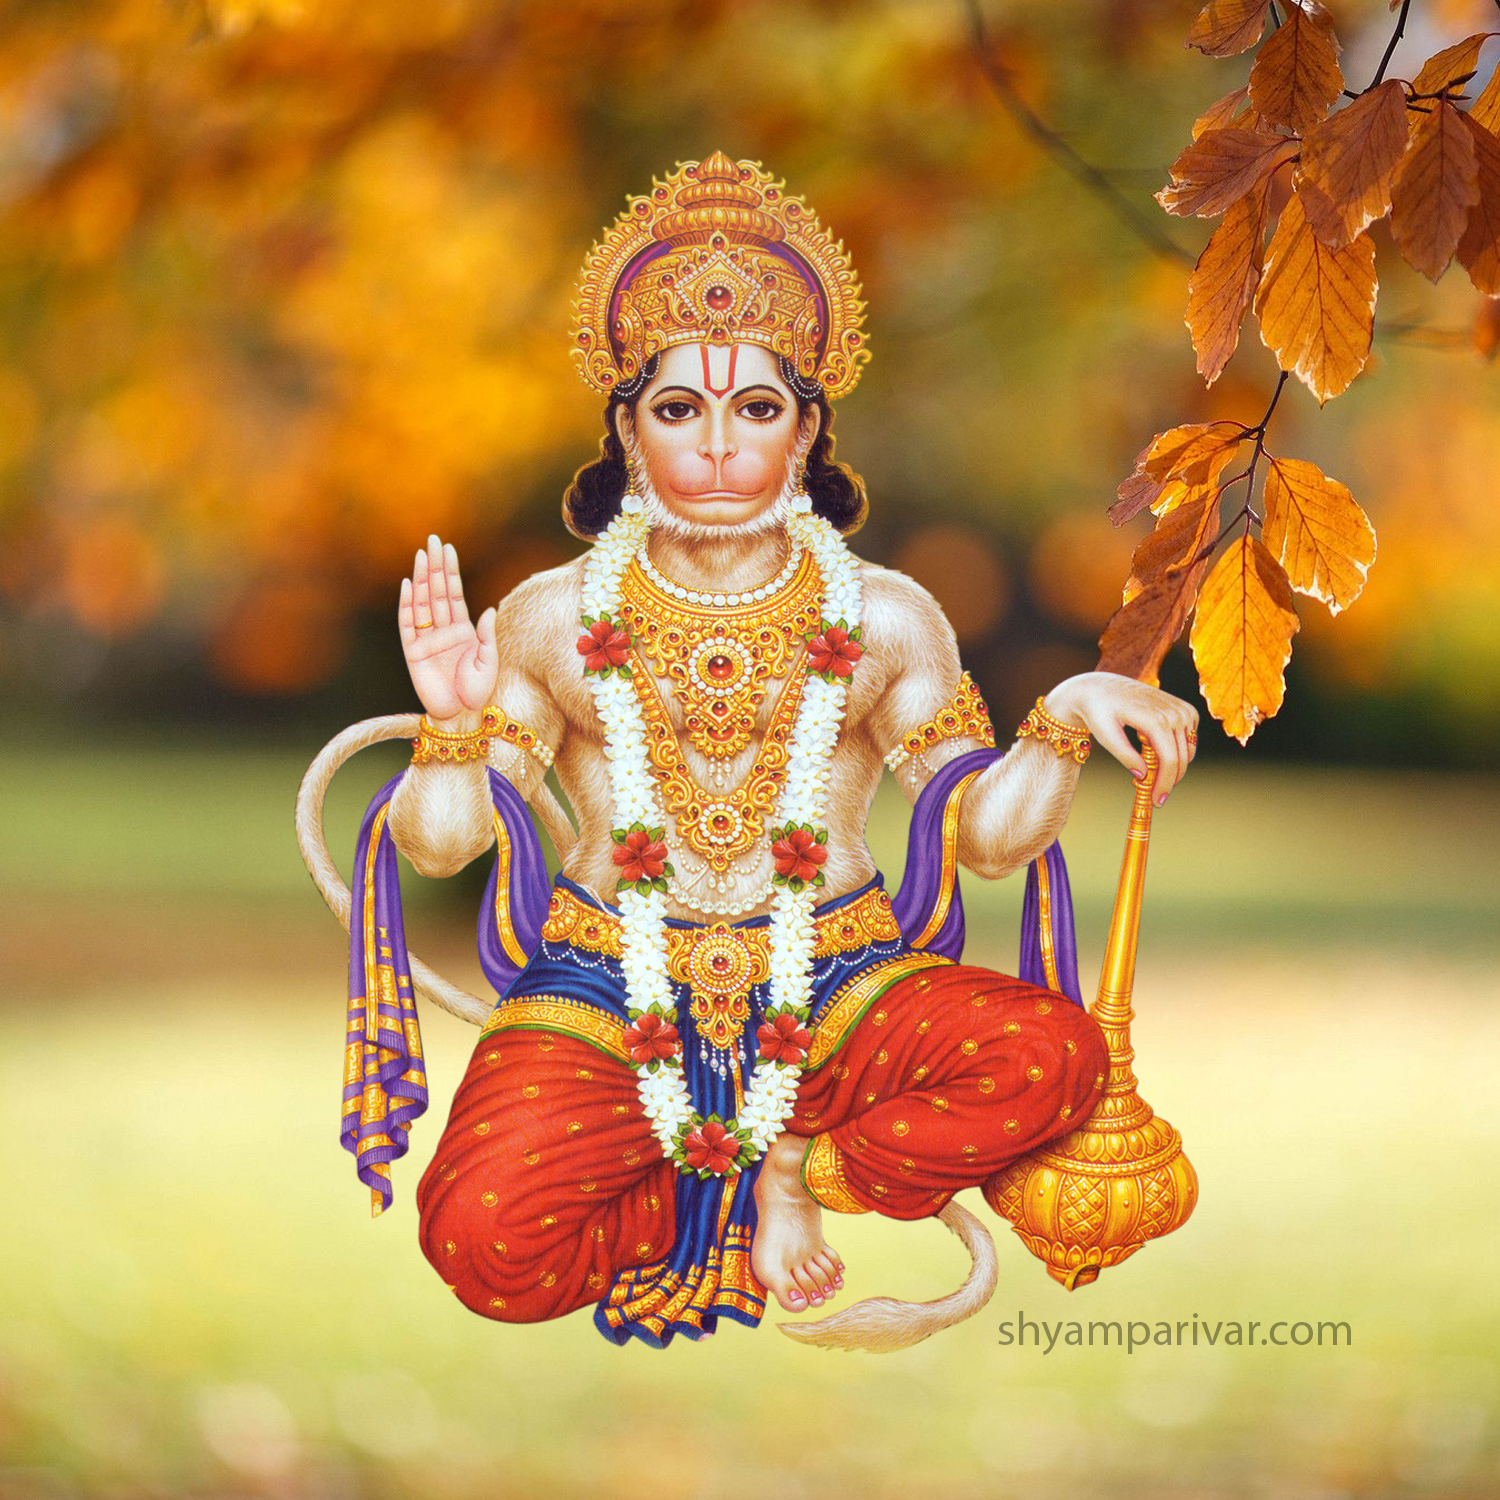 Hanuman ji photo png